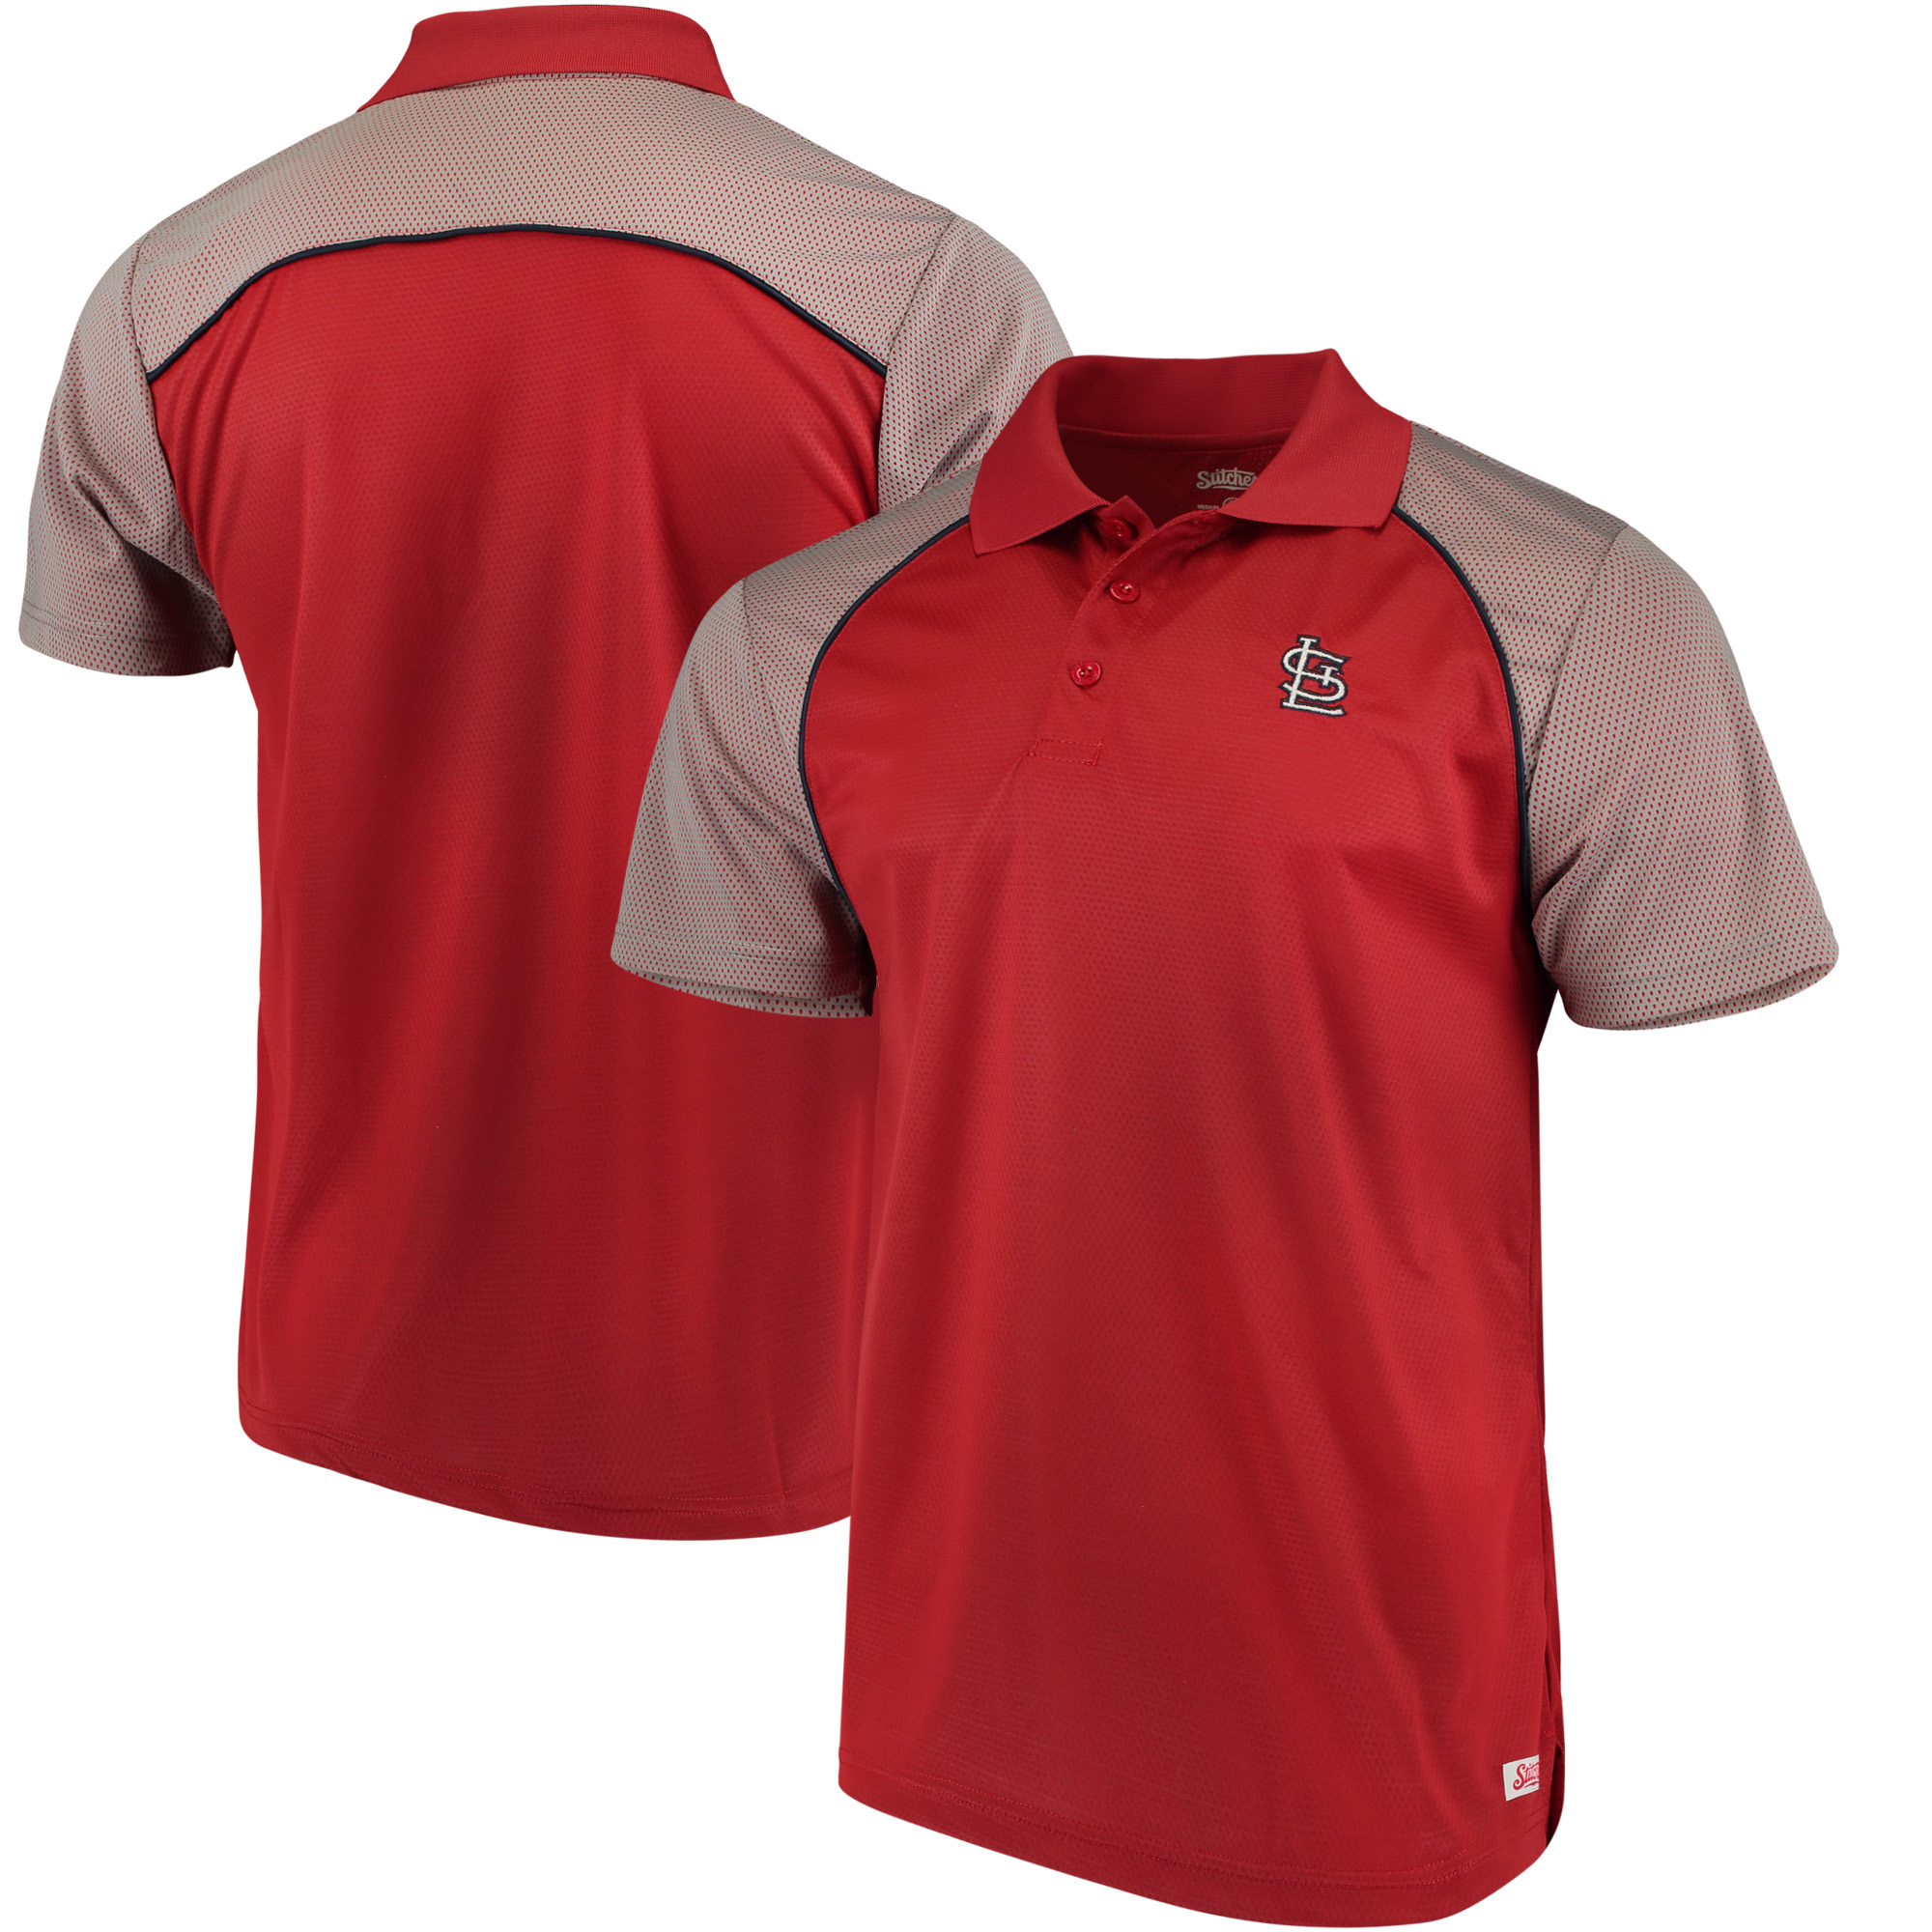 St. Louis Cardinals Stitches First Pitch Mesh Raglan Polo - Red